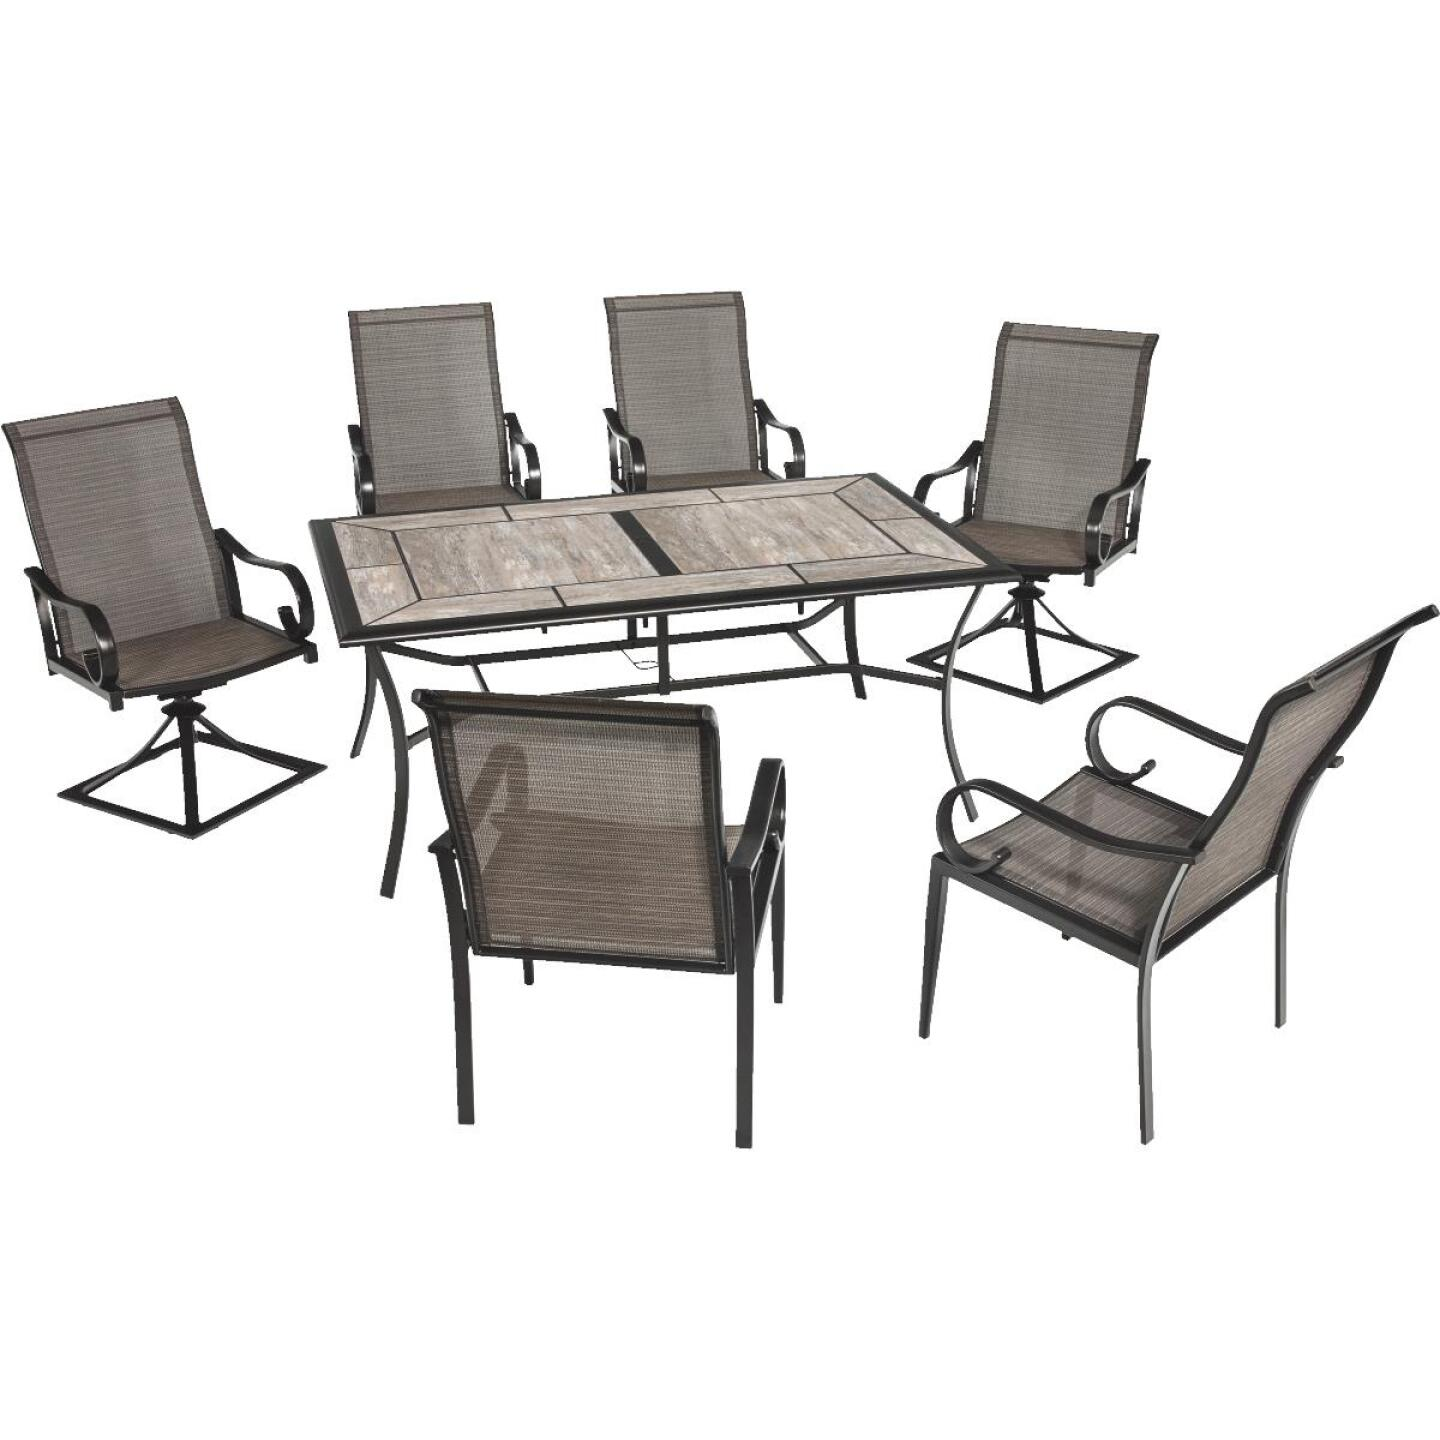 Outdoor Expressions Berkshire 7-Piece Dining Set Image 264